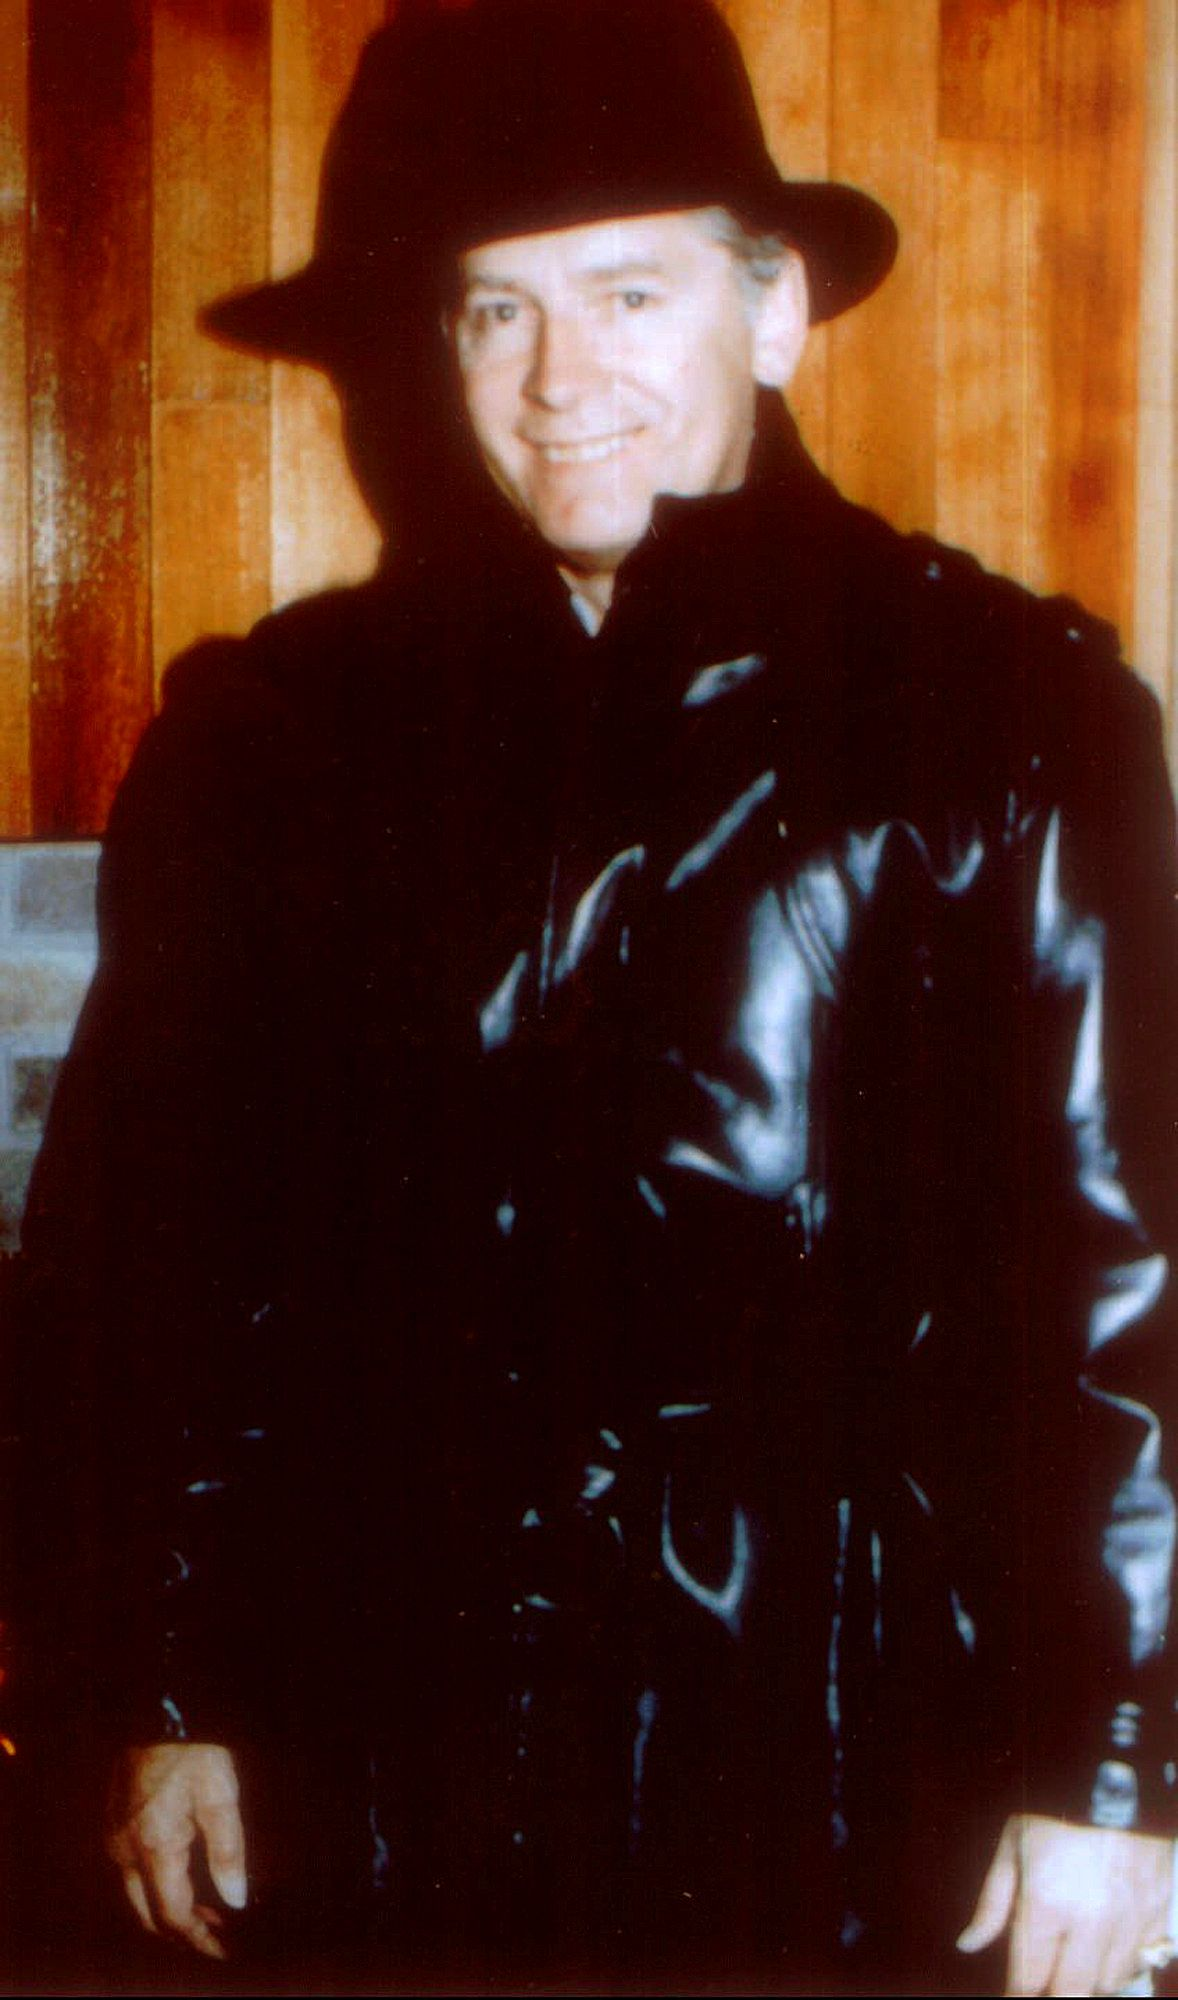 """FILE - This undated file FBI photo found in Boston during an evidence search and released Dec. 30, 1998, shows James """"Whitey"""" Bulger. Officials with the Federal Bureau of Prisons said Bulger died Tuesday, Oct. 30, 2018, in a West Virginia prison after being sentenced in 2013 in Boston to spend the rest of his life in prison. (FBI via AP, File)"""